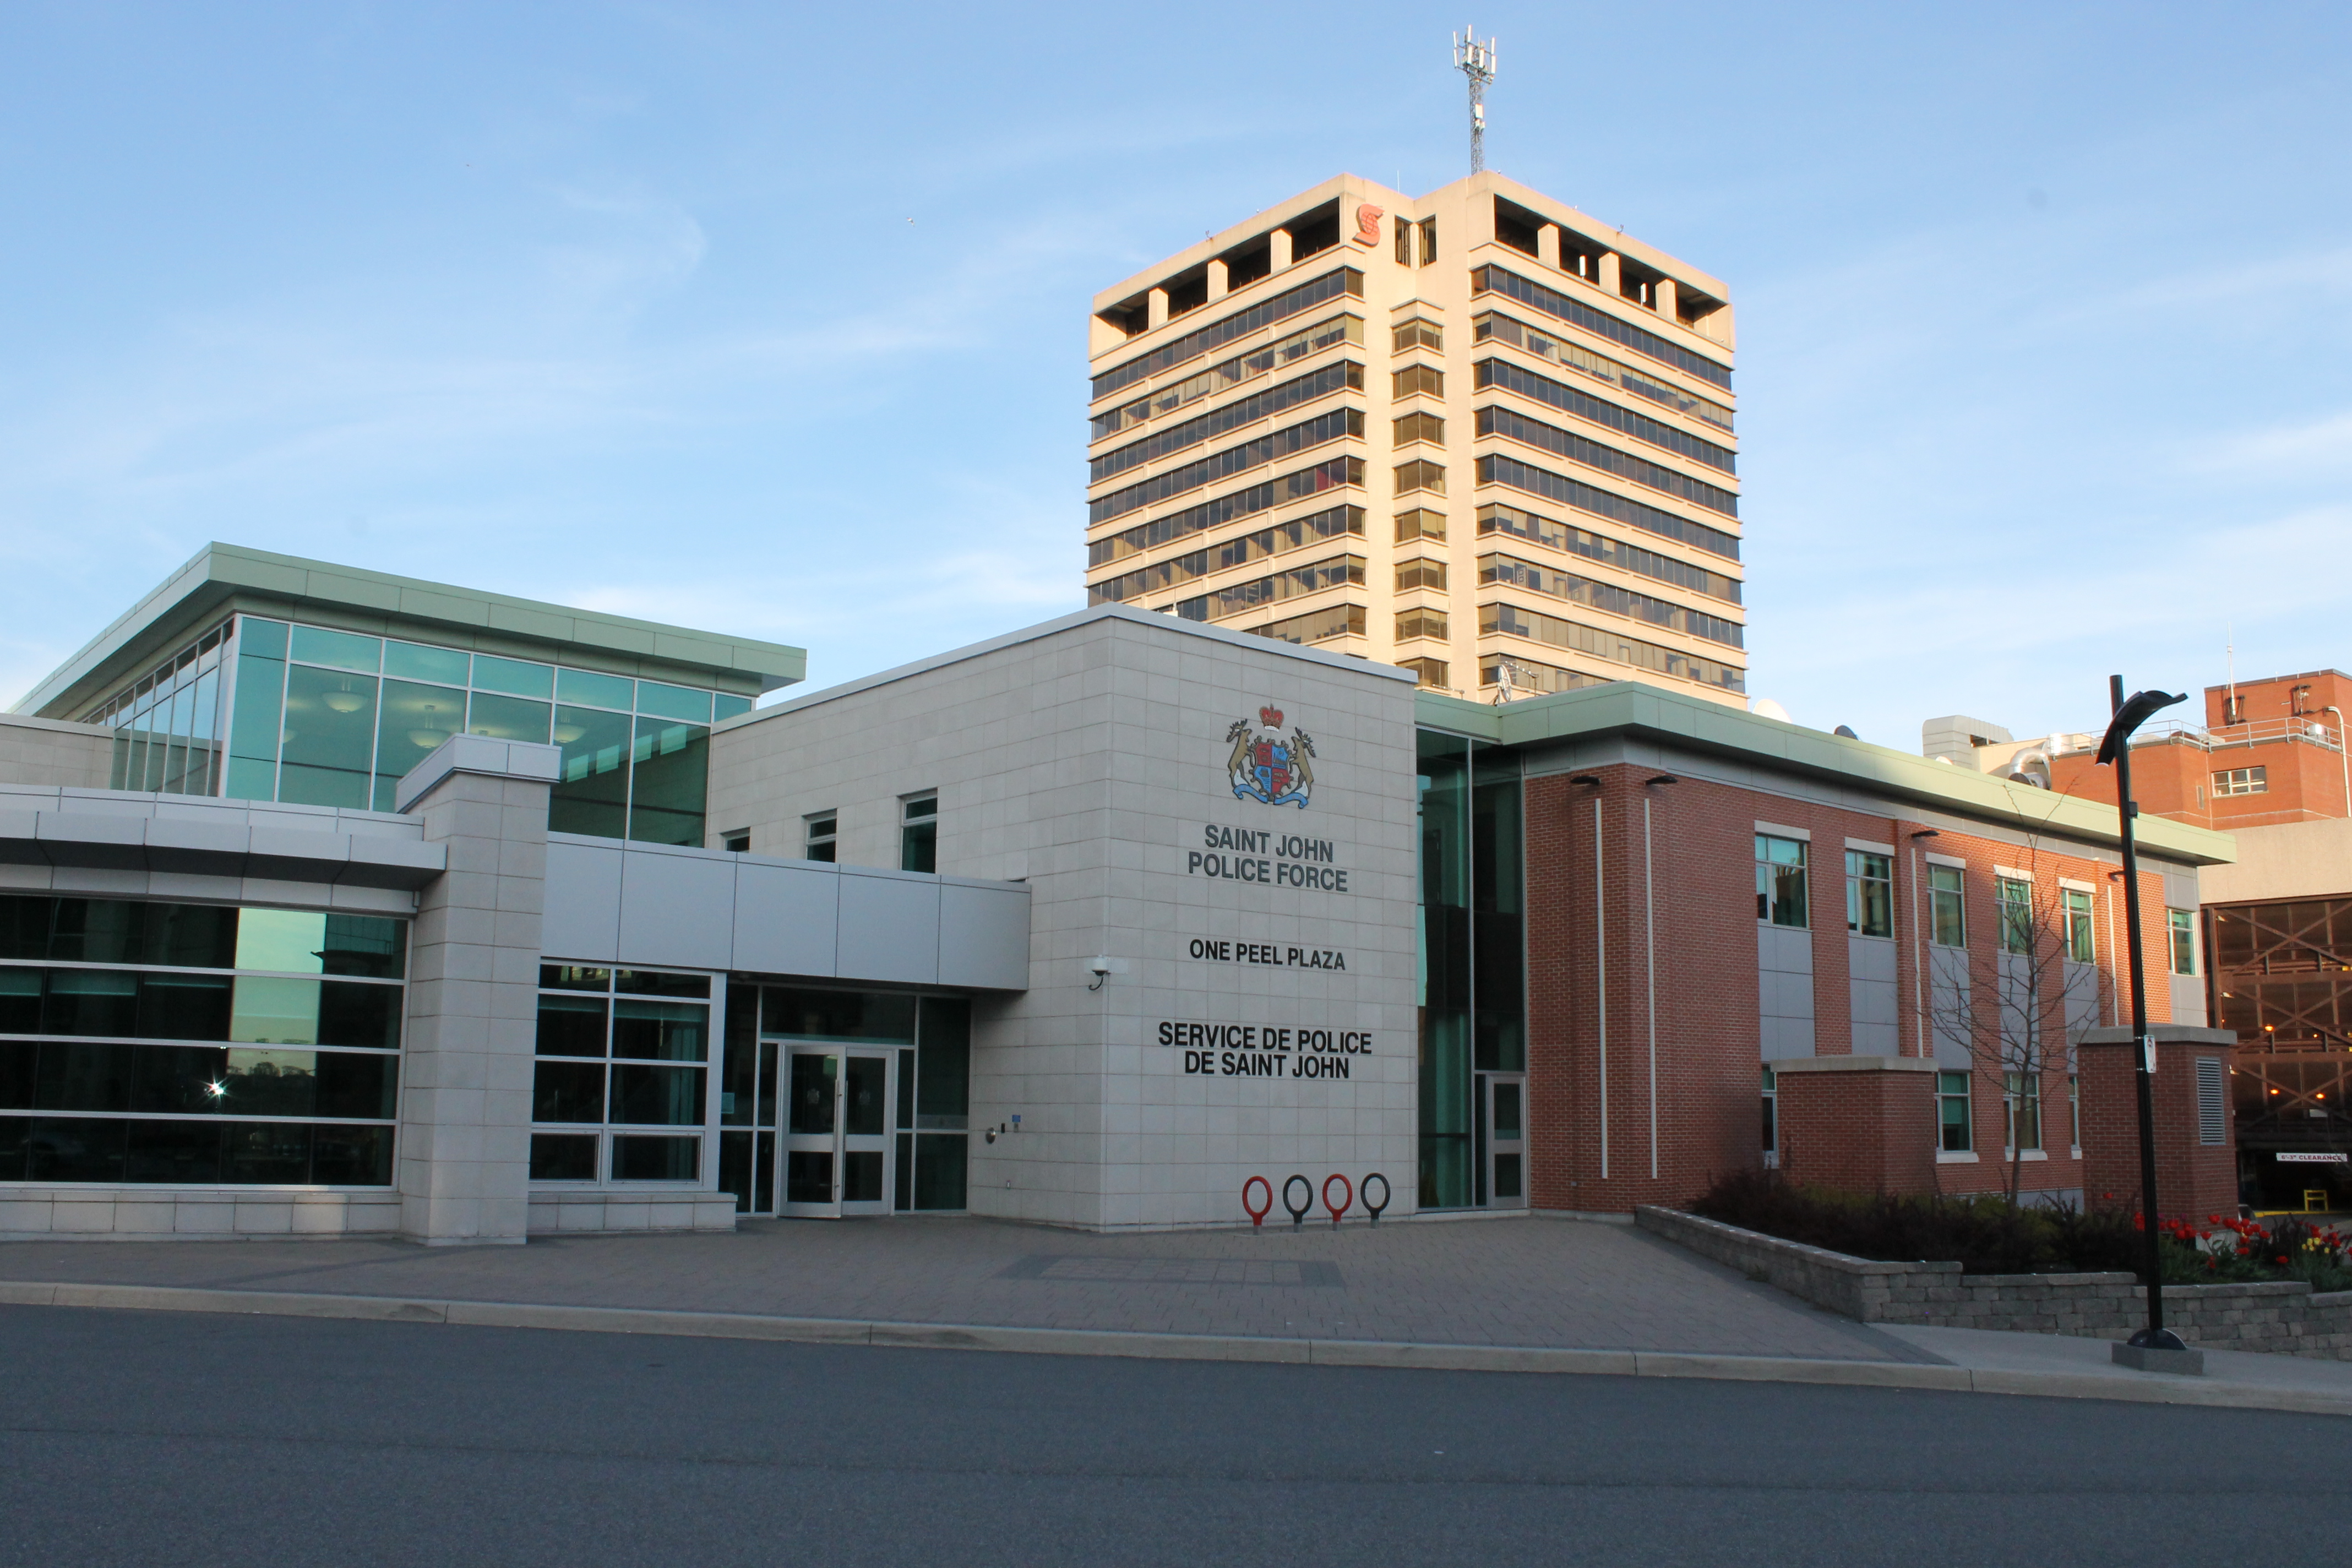 Saint John Police Head Quarters